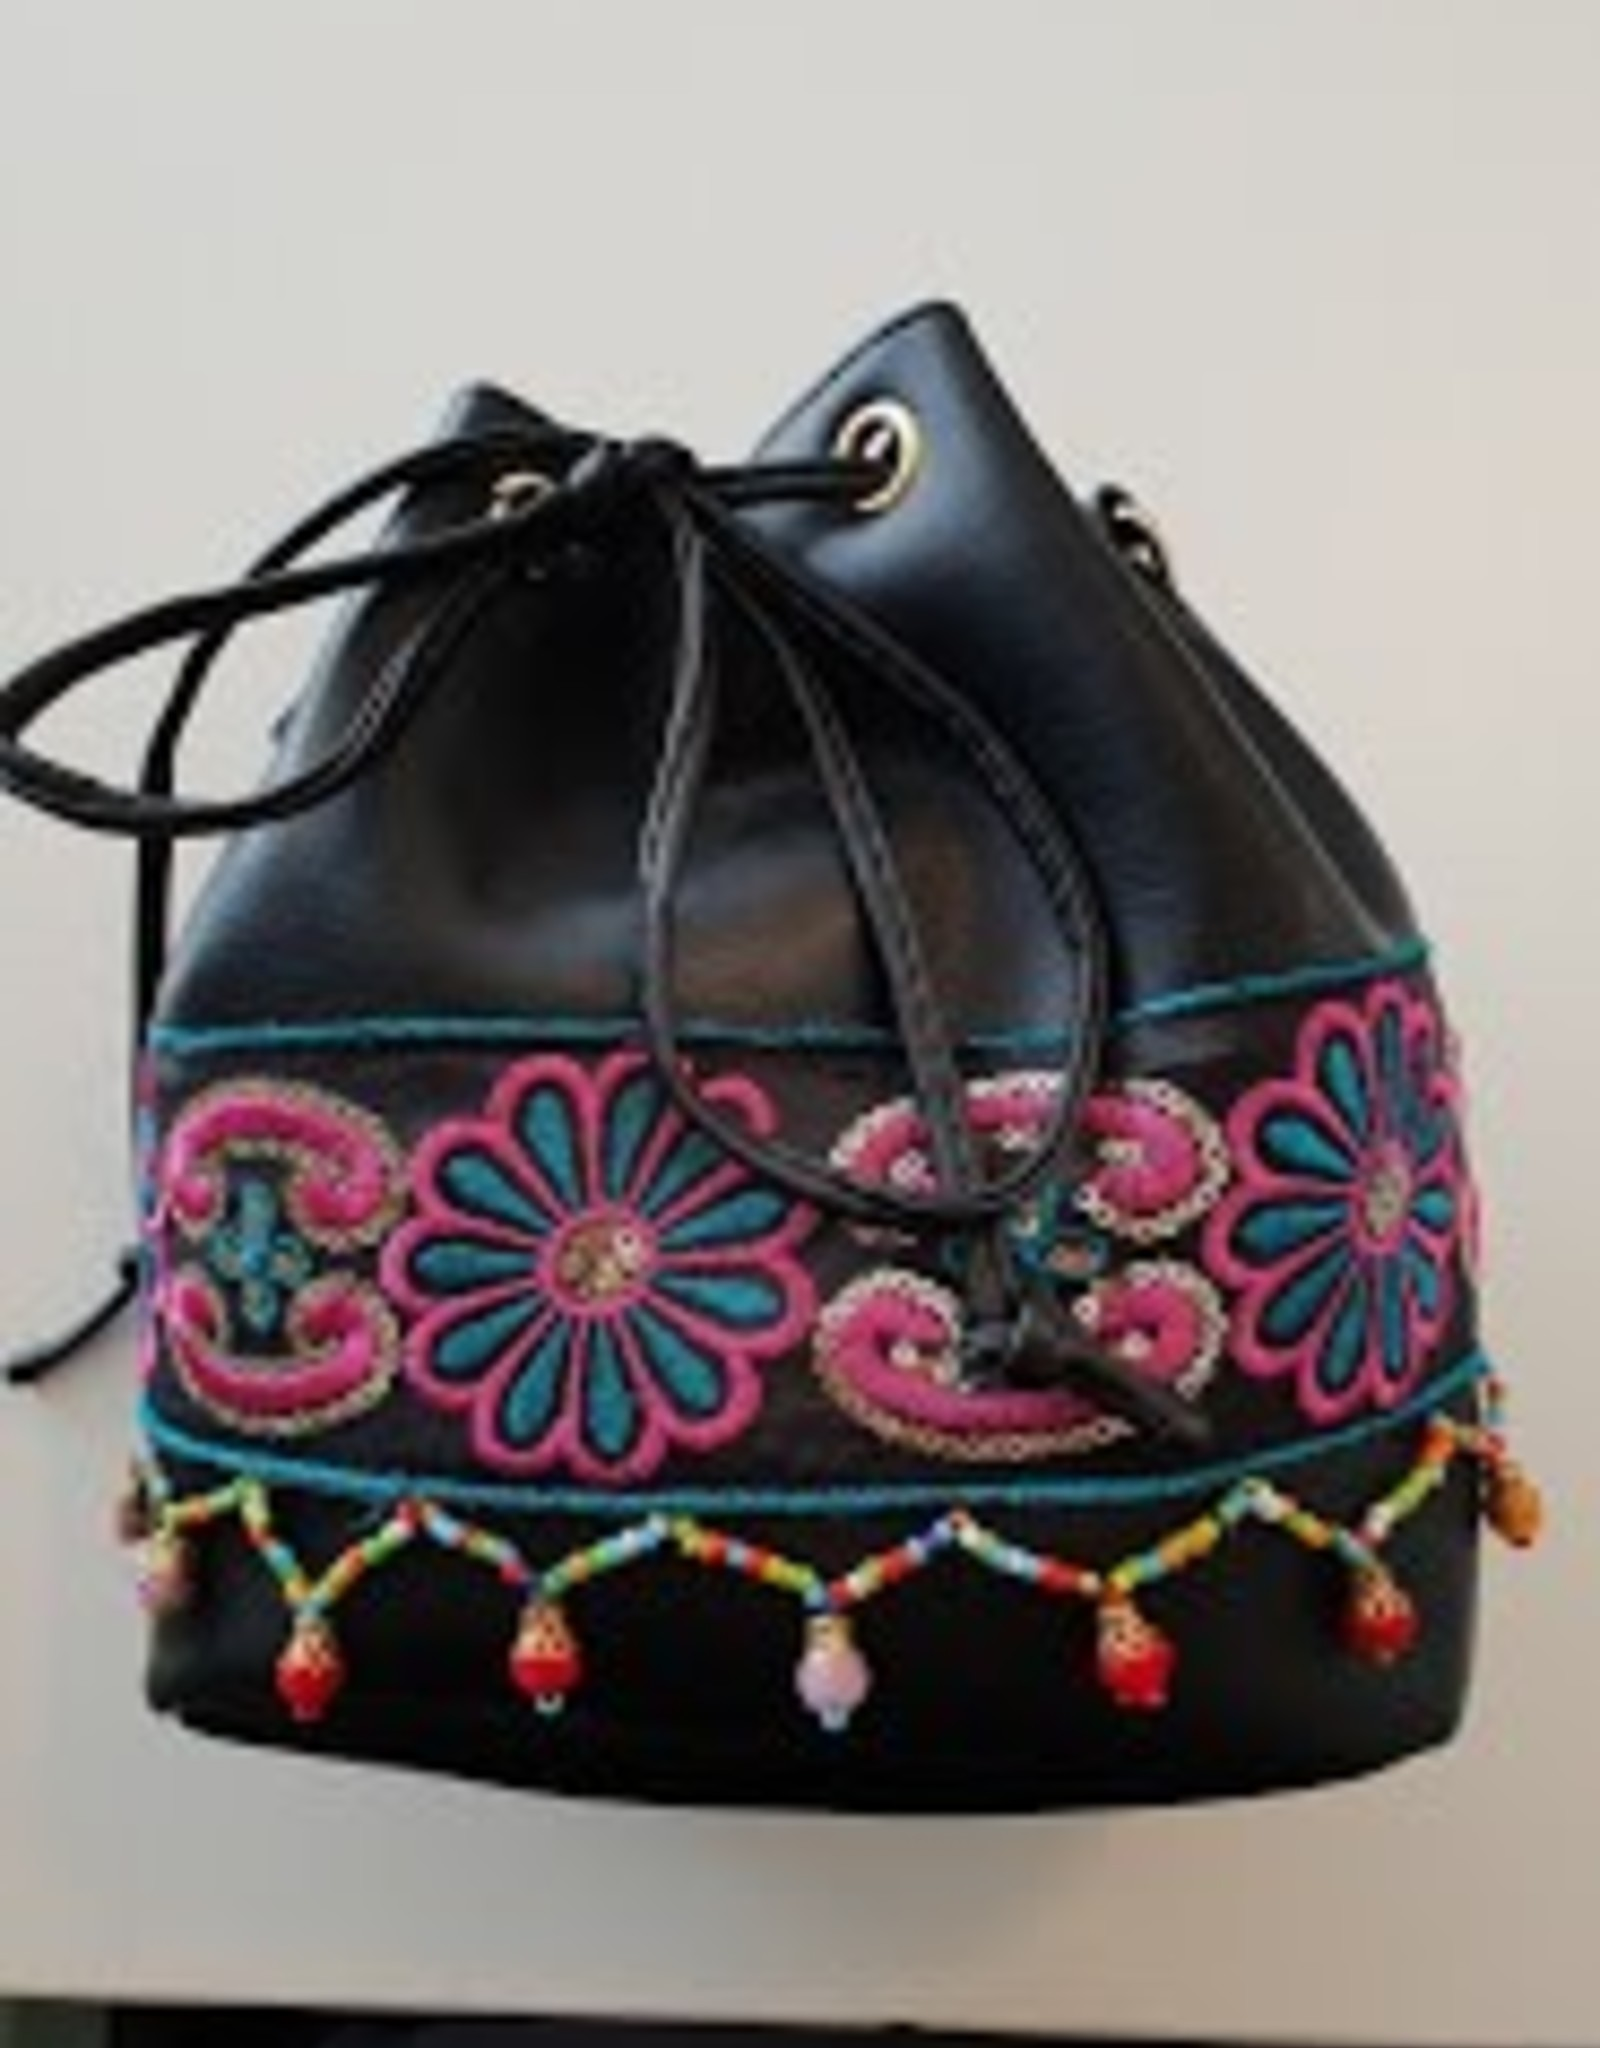 Ivys Shoulder Bag with Embroidery & Beaded Tassles Black Pouch